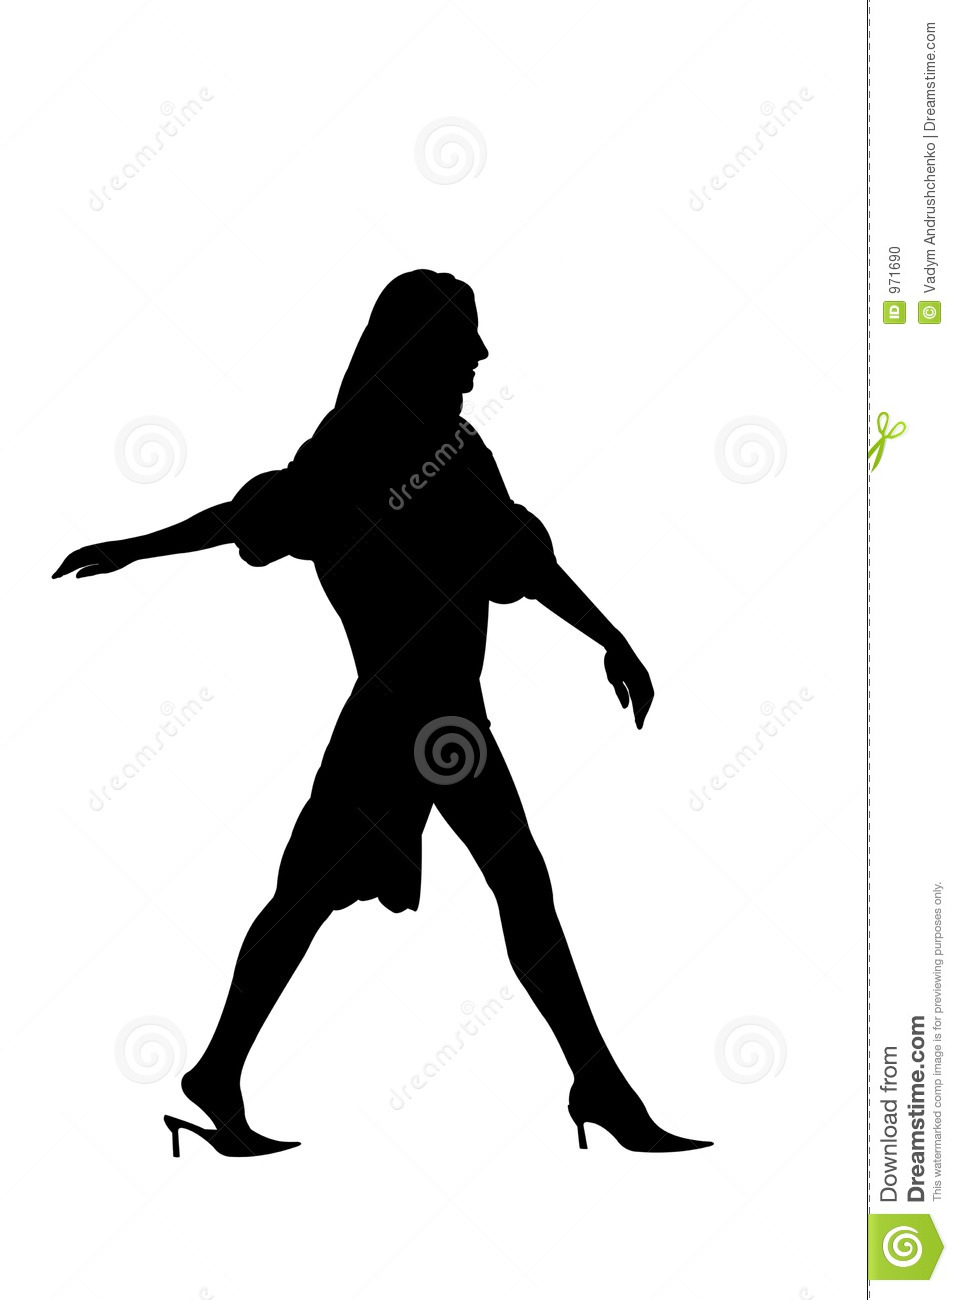 Woman walking away from man silhouette